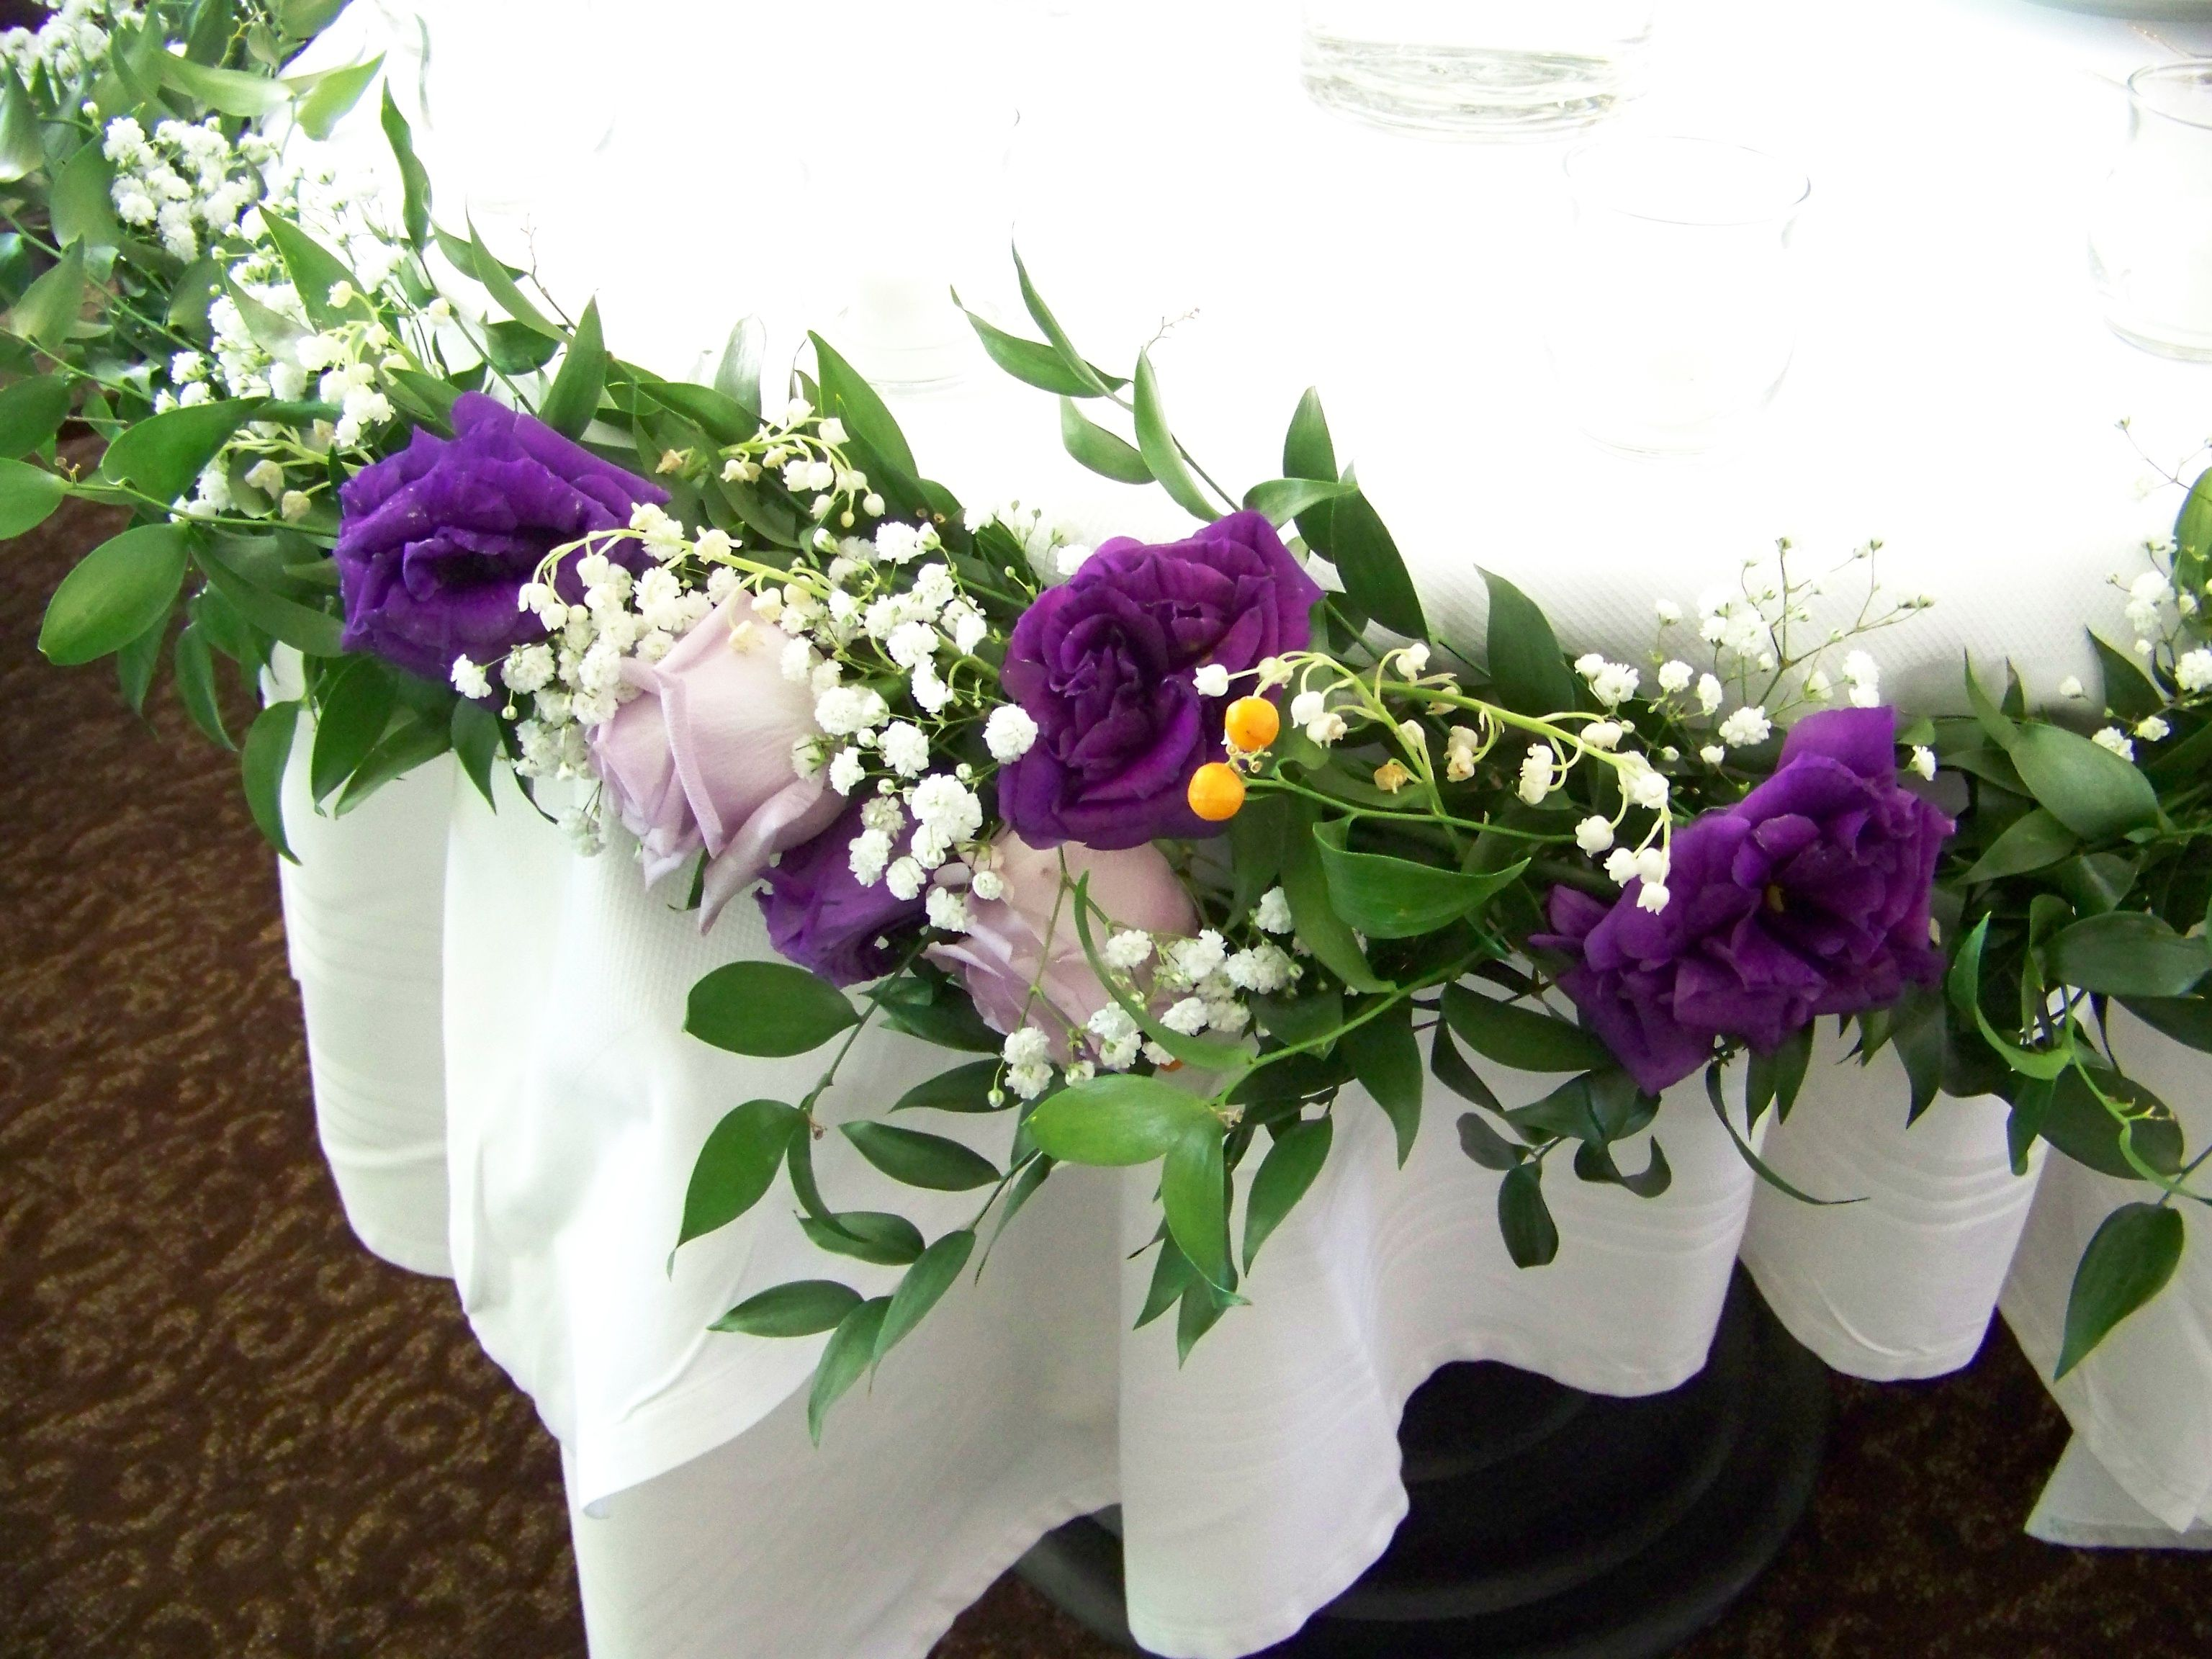 Beautiful Garland With Greens Purple And White Flowers For Sweet Heart Table Decoration White Flowers Purple And White Flowers Flowers